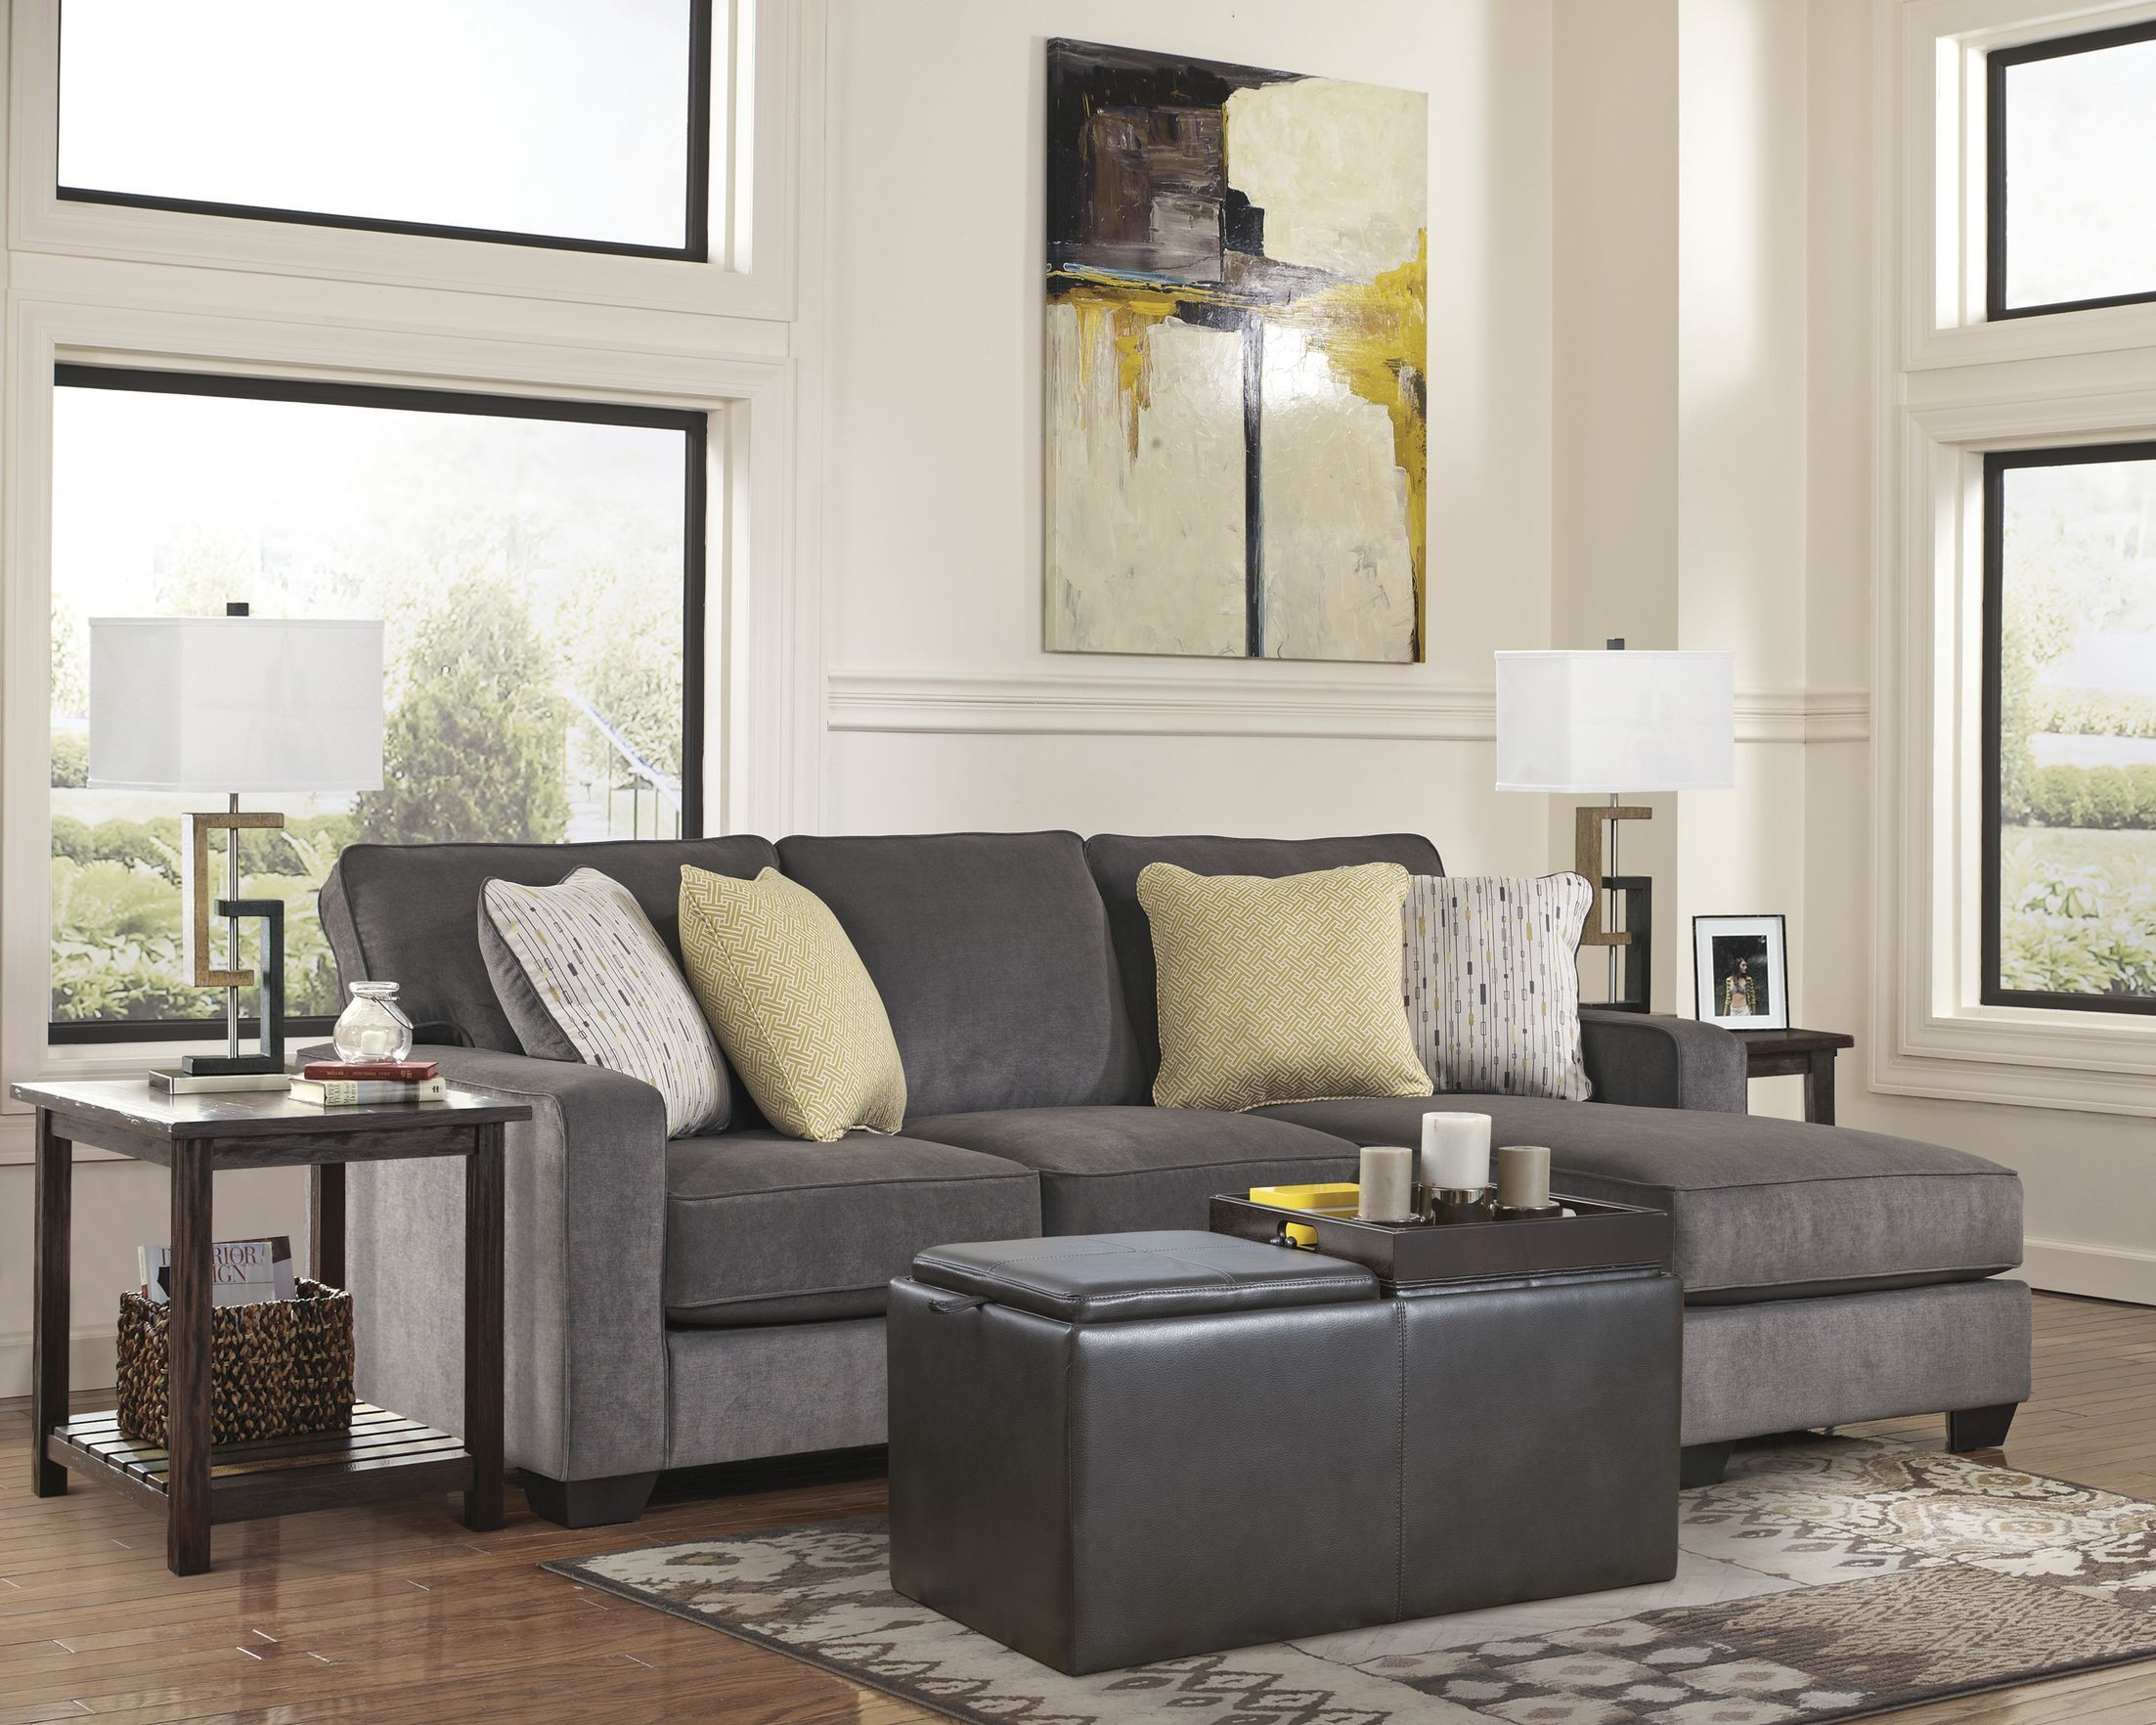 Grey Sectional Couch For Your Living Room Ideas Window Ideas